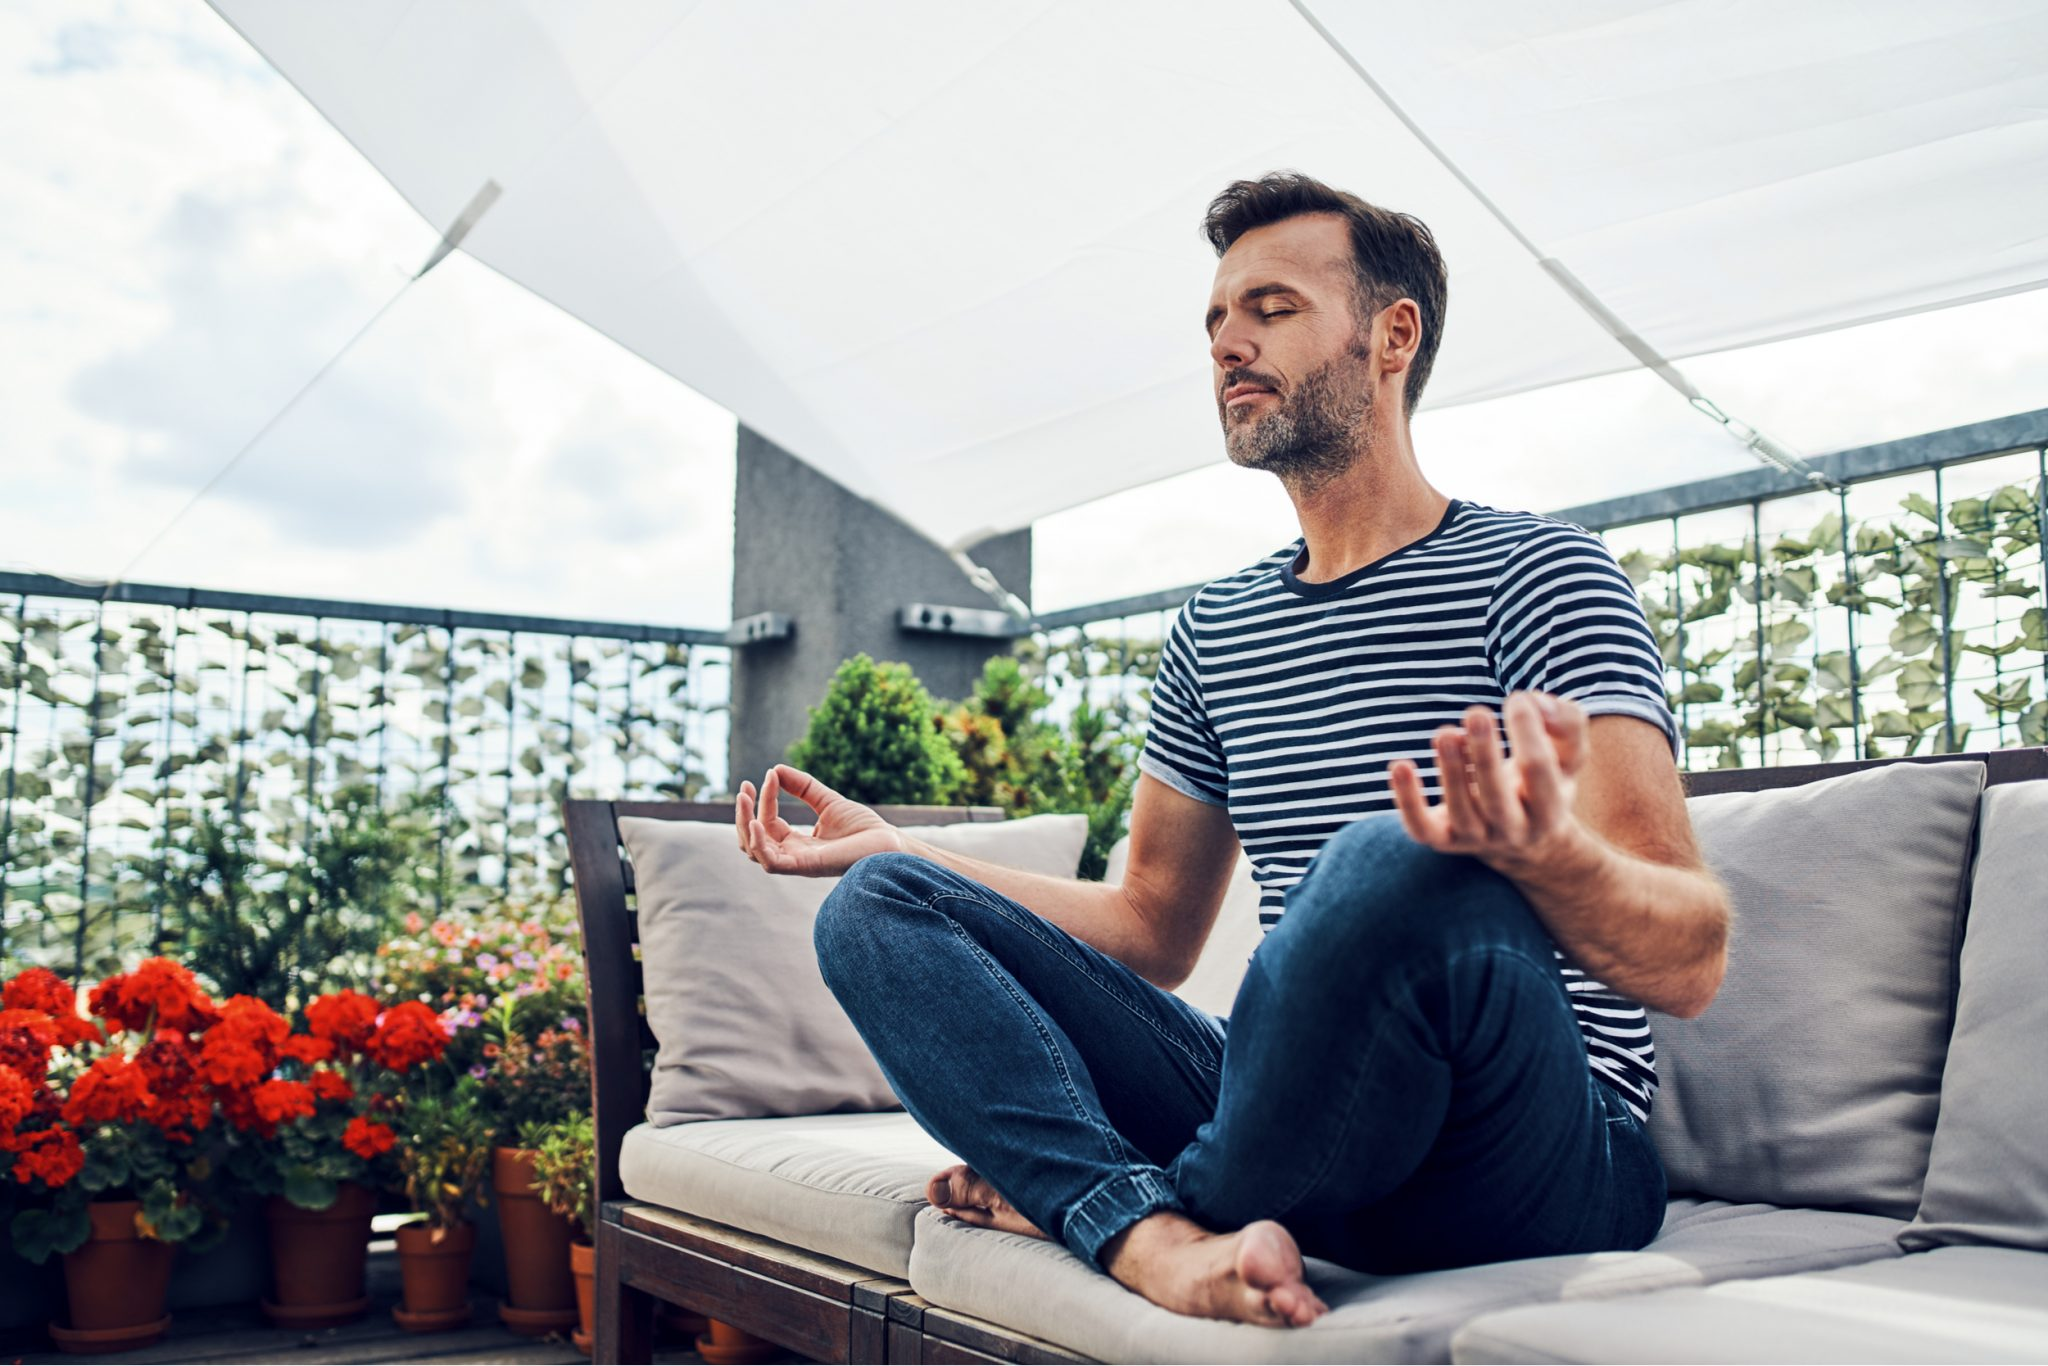 Meditation Space tips